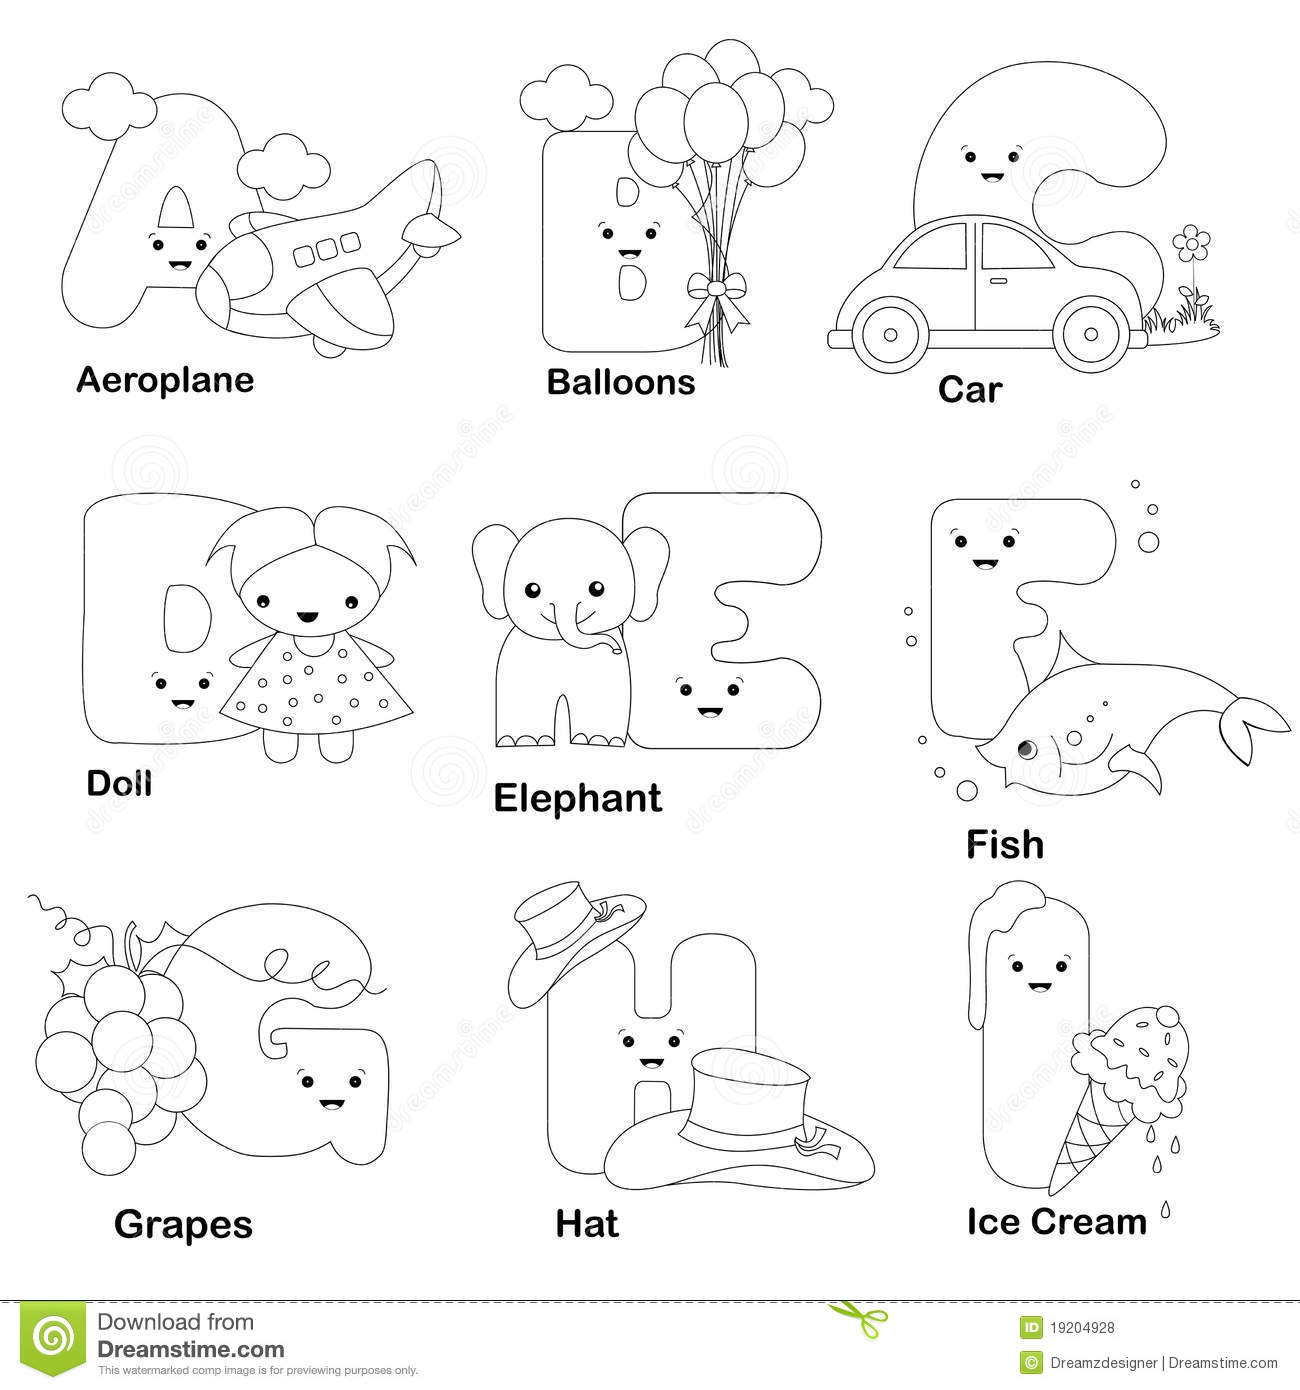 Printable Alphabet Coloring Sheets For Preschoolers Letter